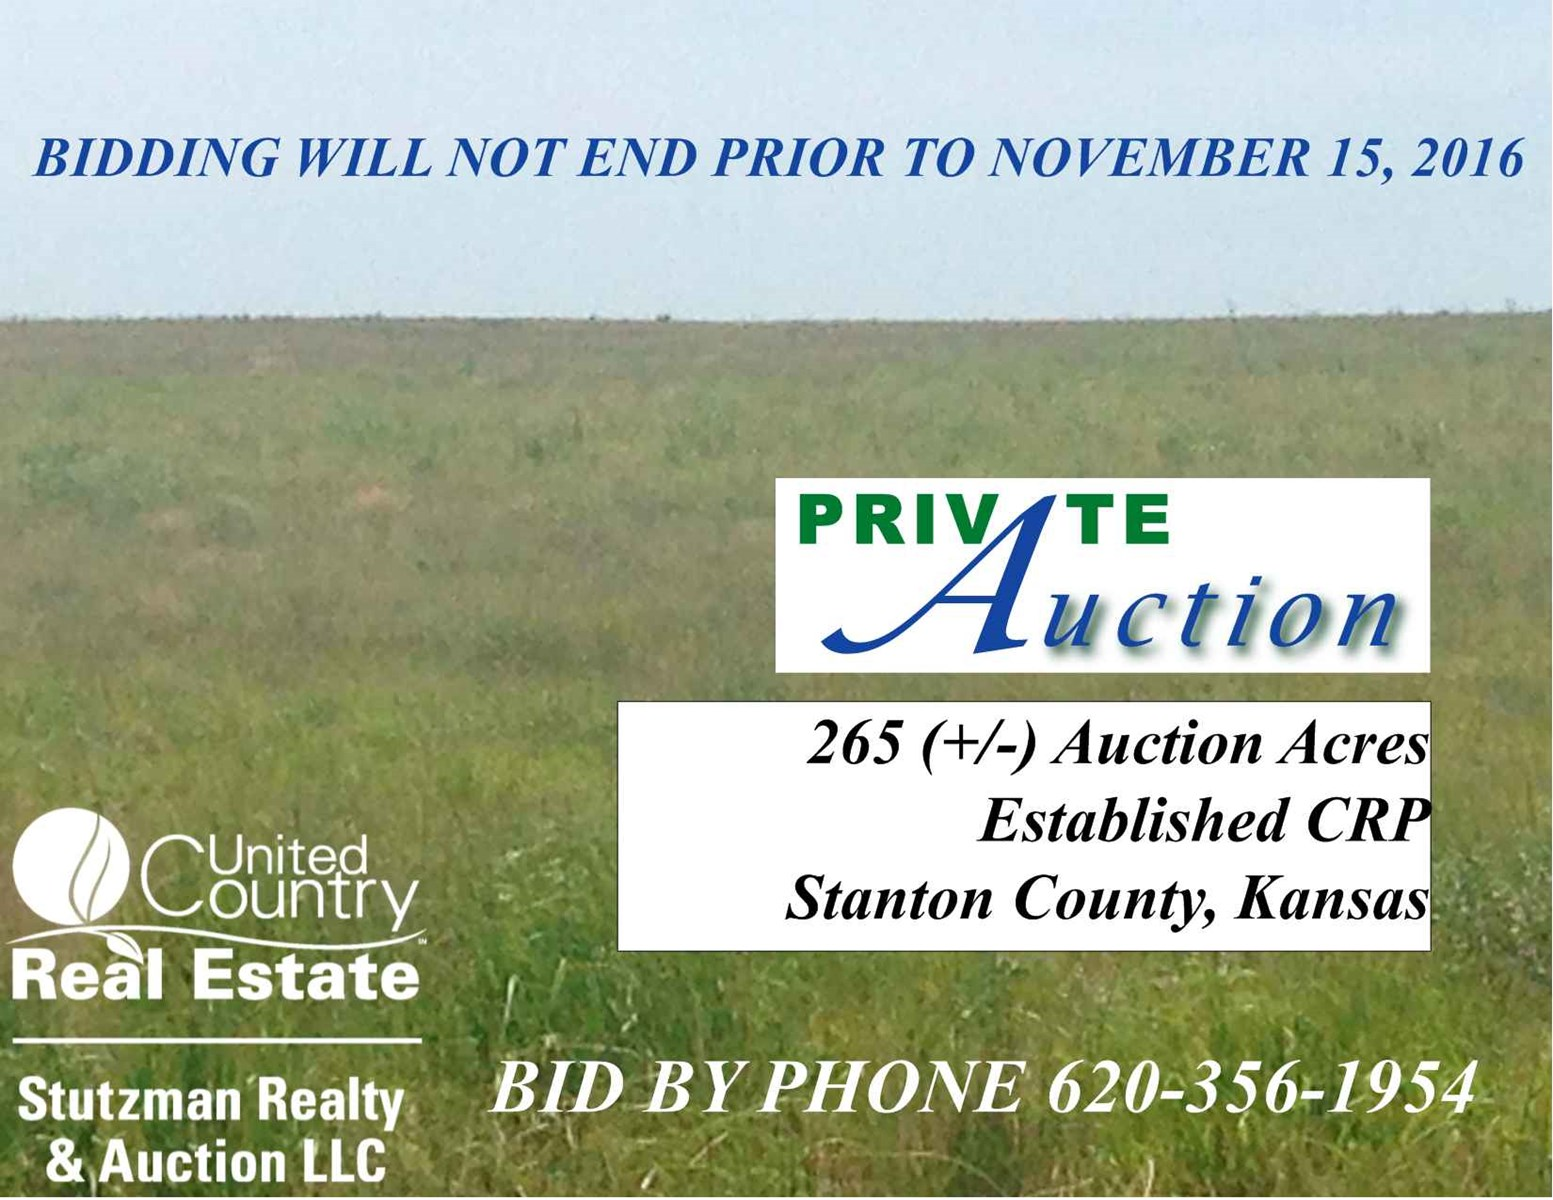 265 +/- ACRES OF ESTABLISHED CRP